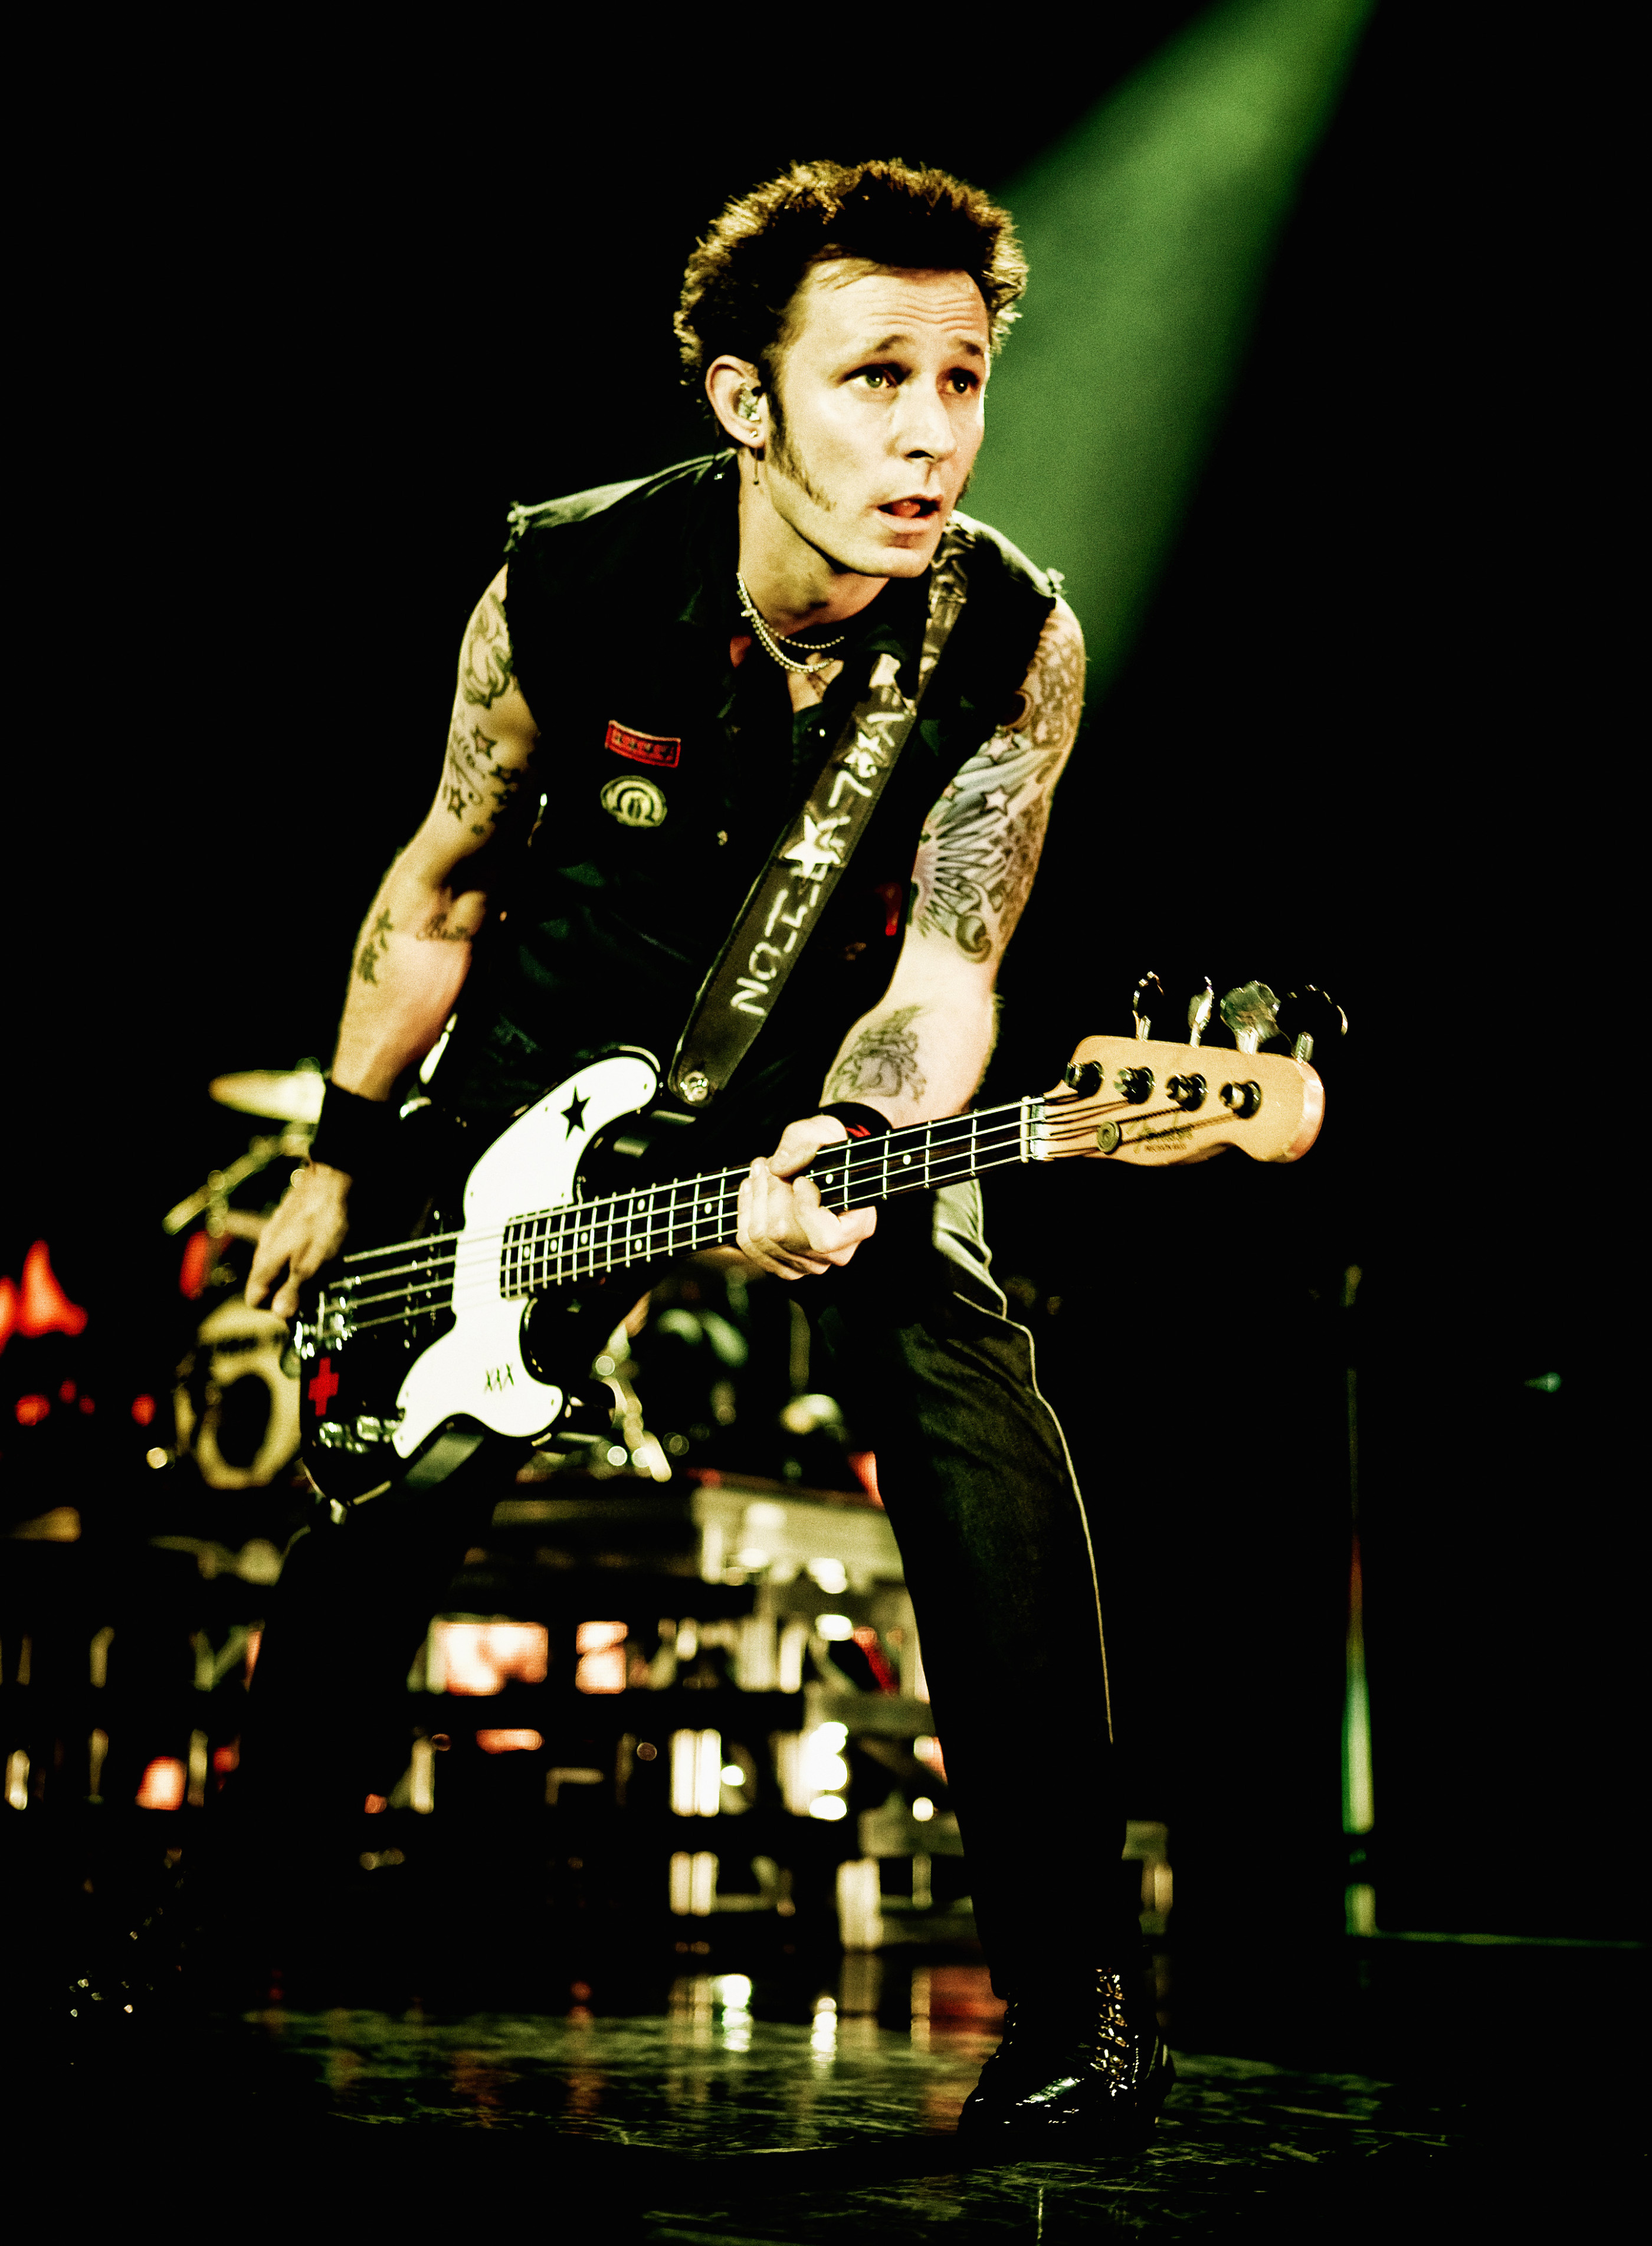 Mike Dirnt Fender Shoot by Ash Newell